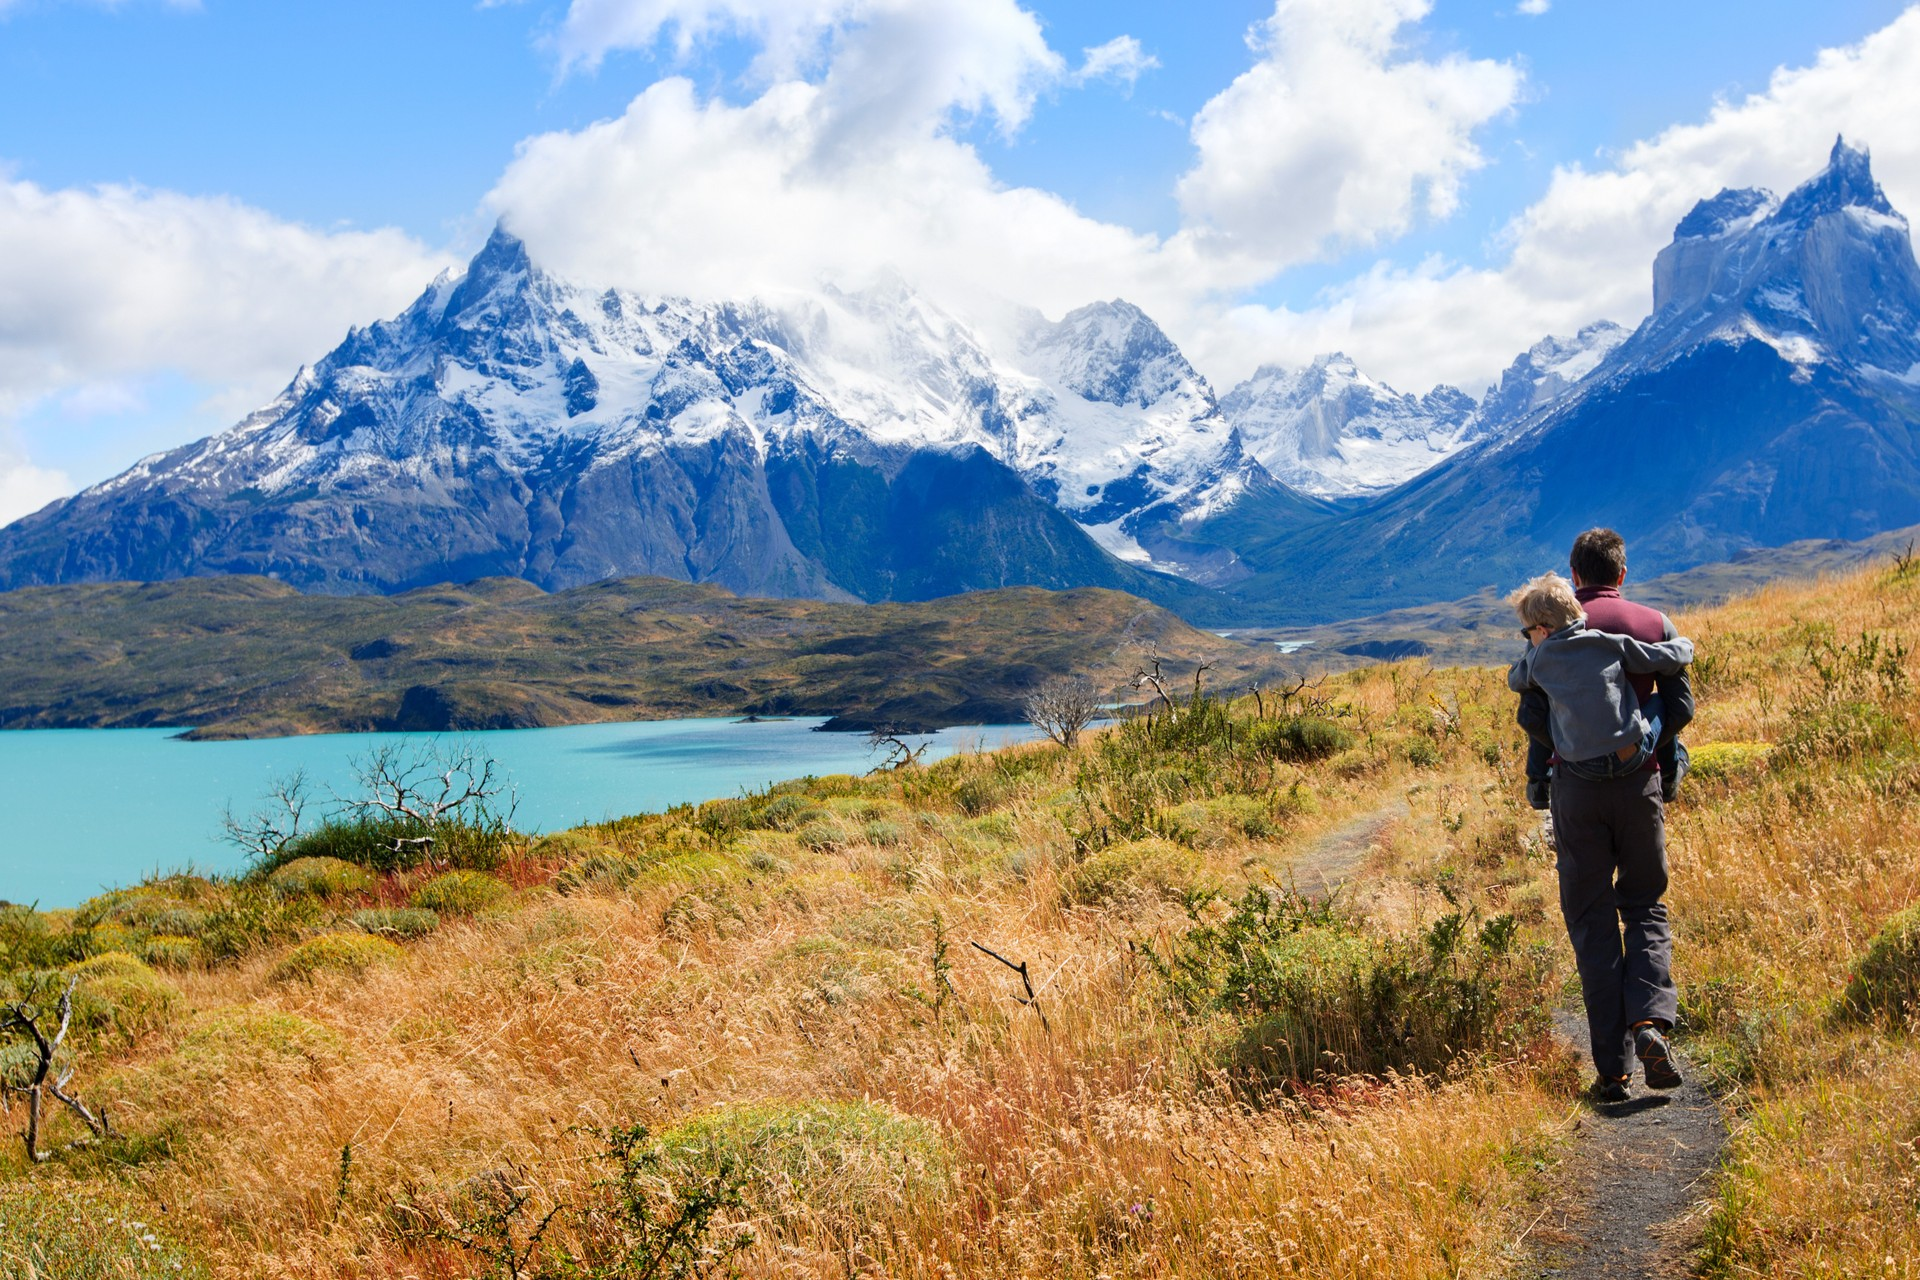 A father and son hiking through Patagonia